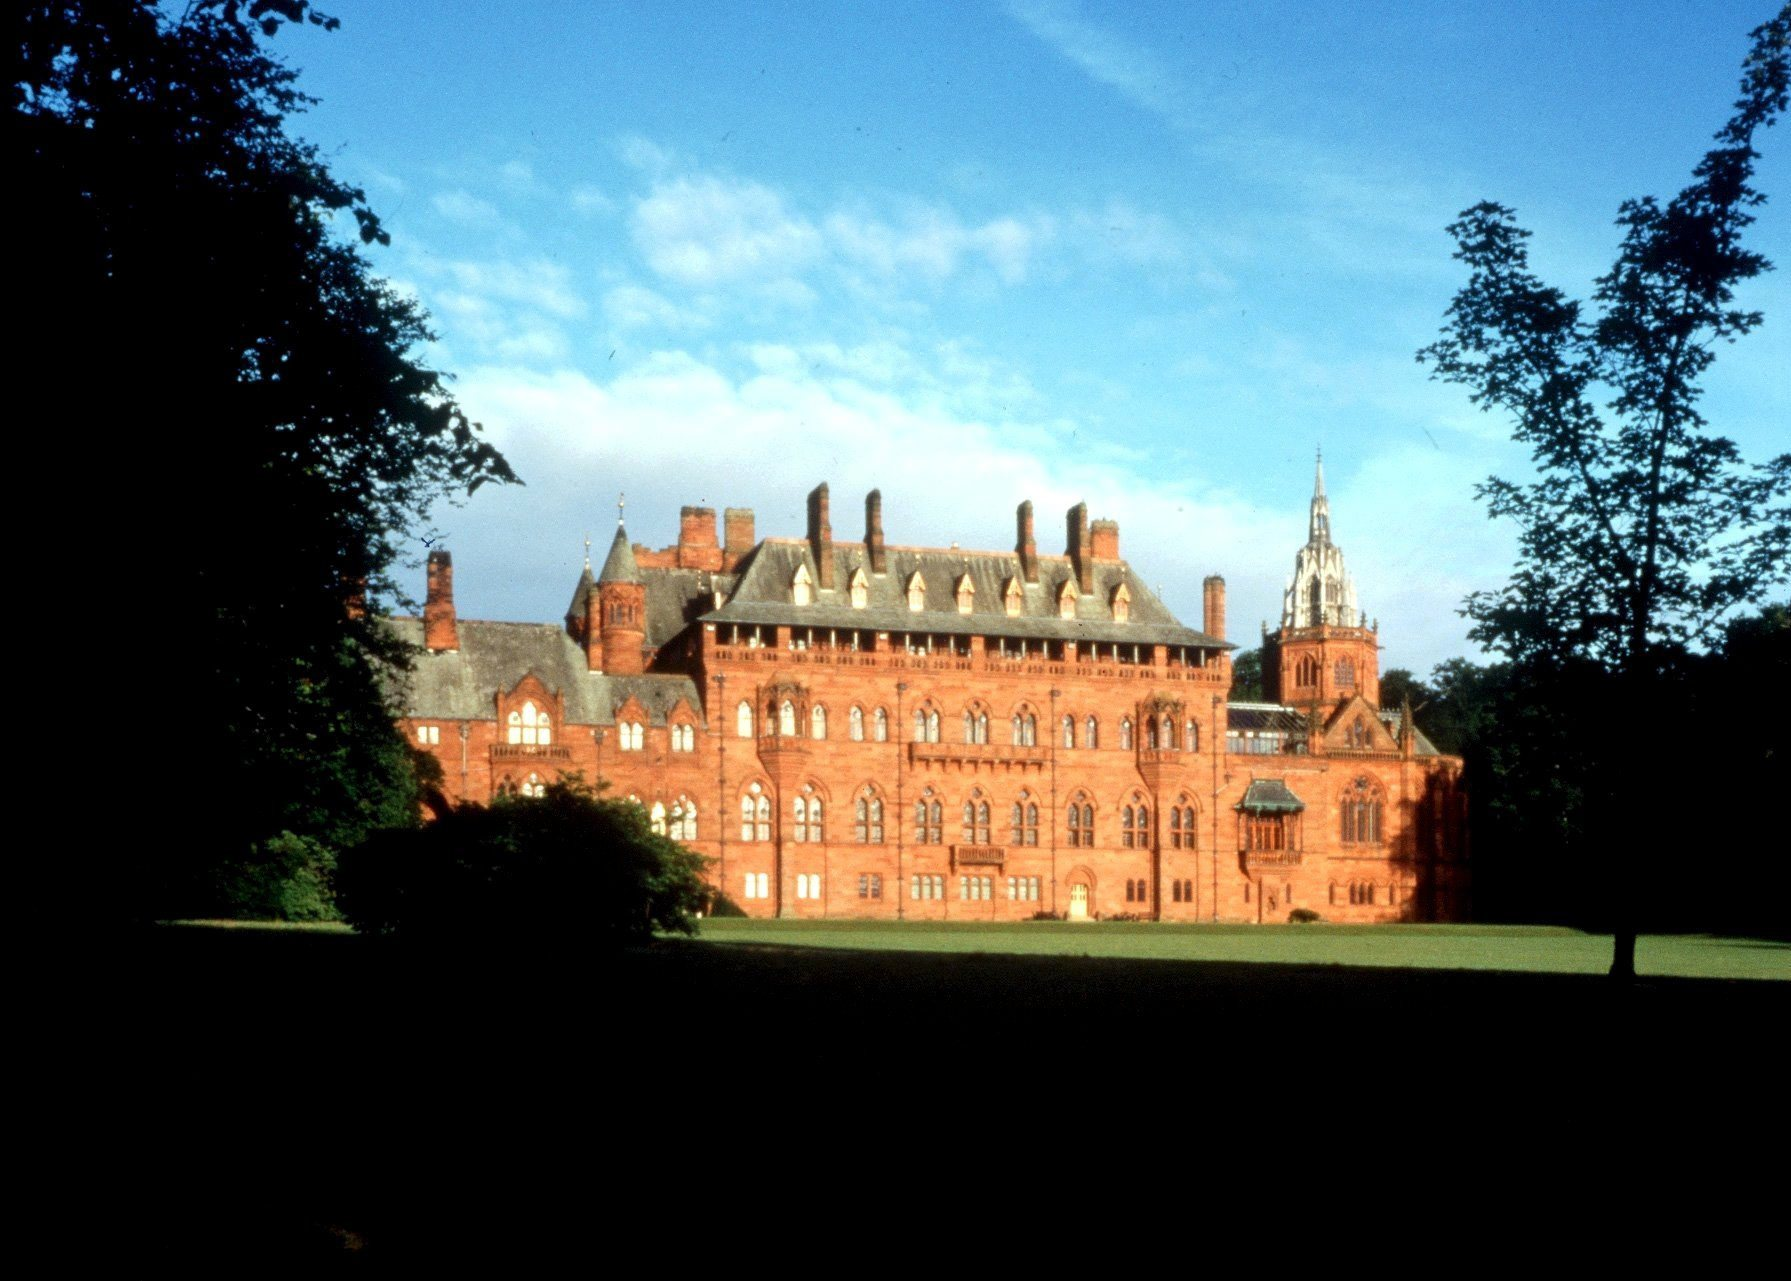 Downton Abbey days out: The 10 grandest stately homes in Scotland